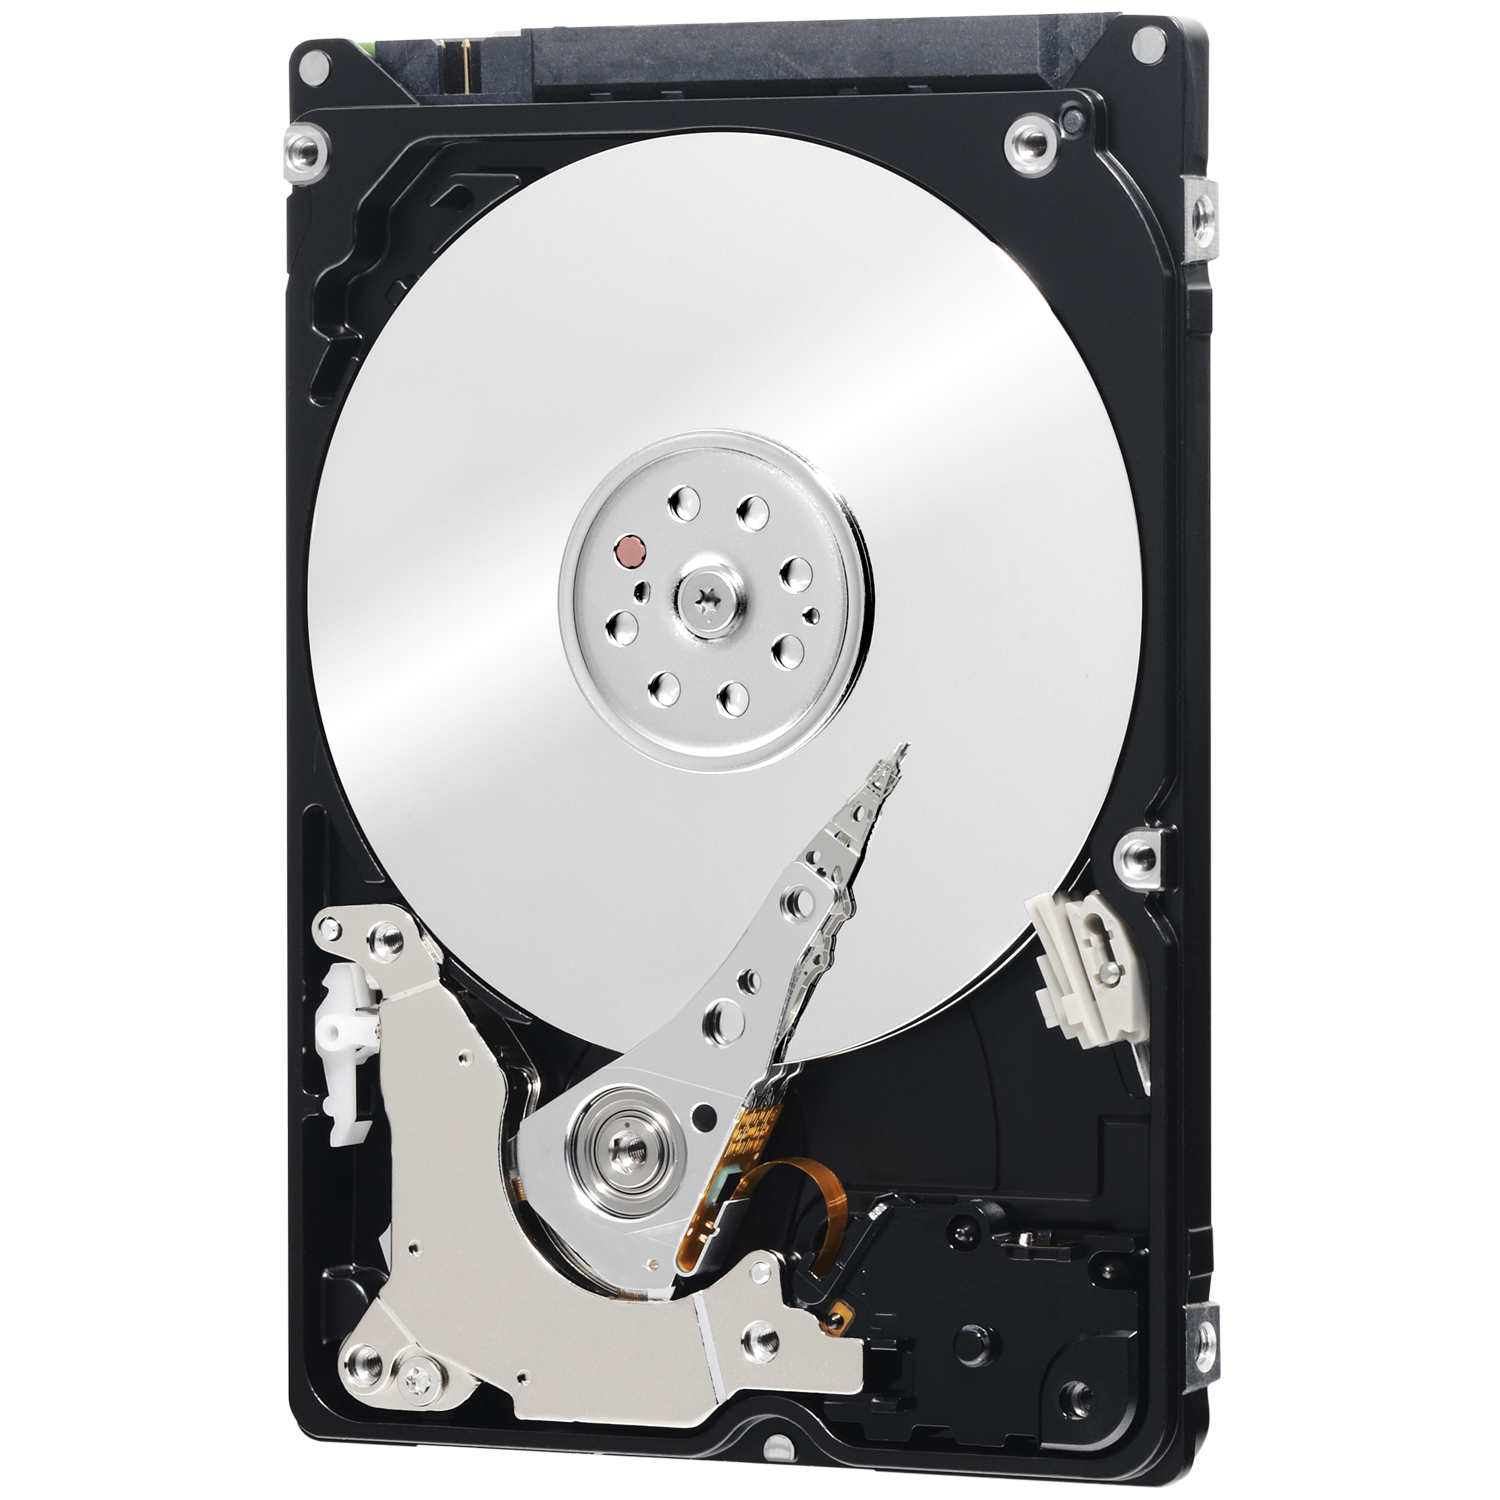 WESTERN DIGITAL BLACK 500GB SERIAL ATA III INTERNAL HARD DRIVE REFURBISHED